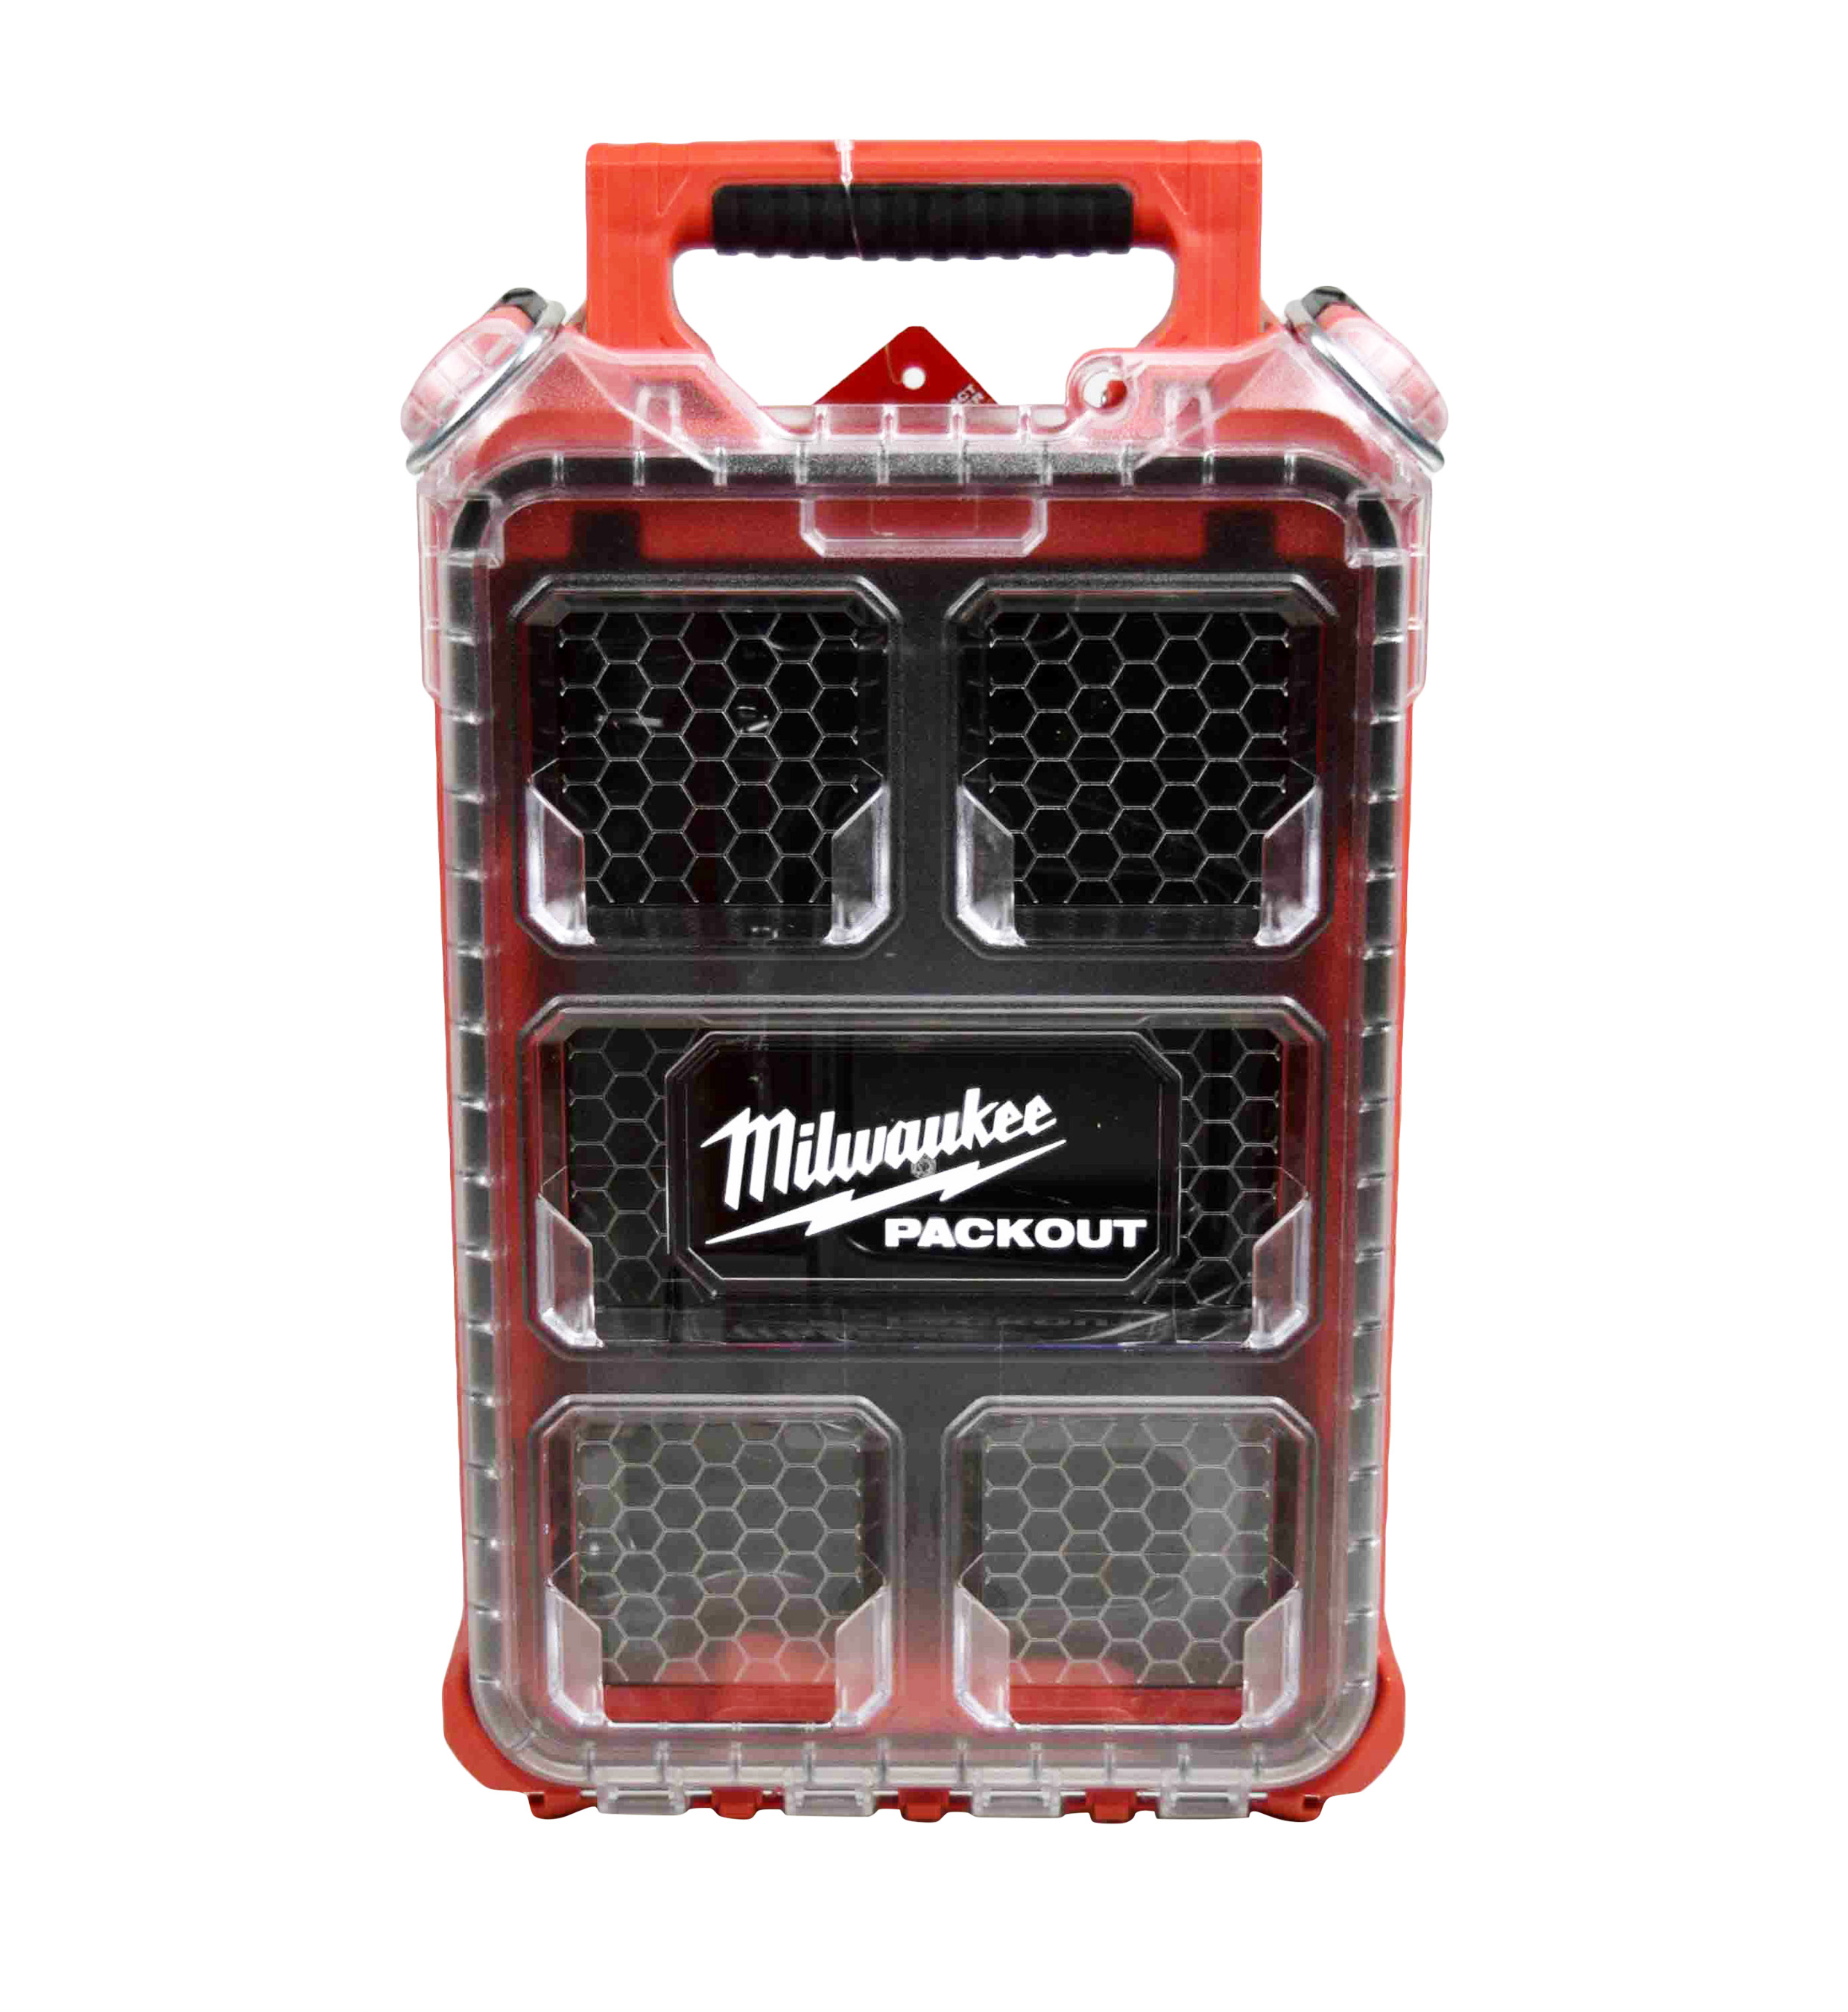 Milwaukee-48-22-8435-Impact-Resistant-Polymer-Packout-Compact-Organizer-image-2